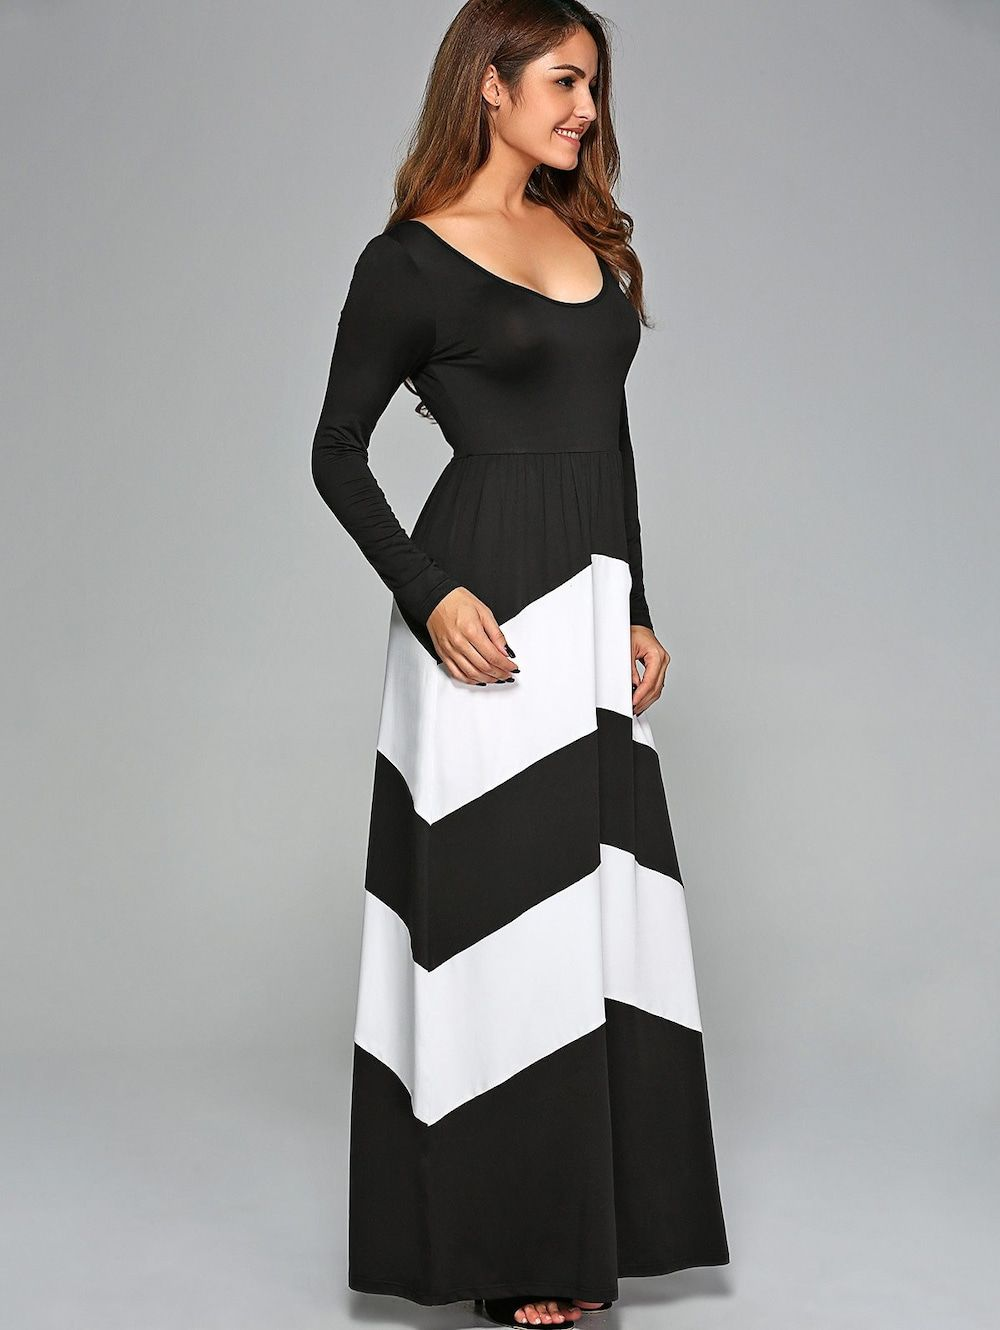 Zigzag Prom Party Maxi Dress with Sleeves - WHITE/BLACK L | nähen ...